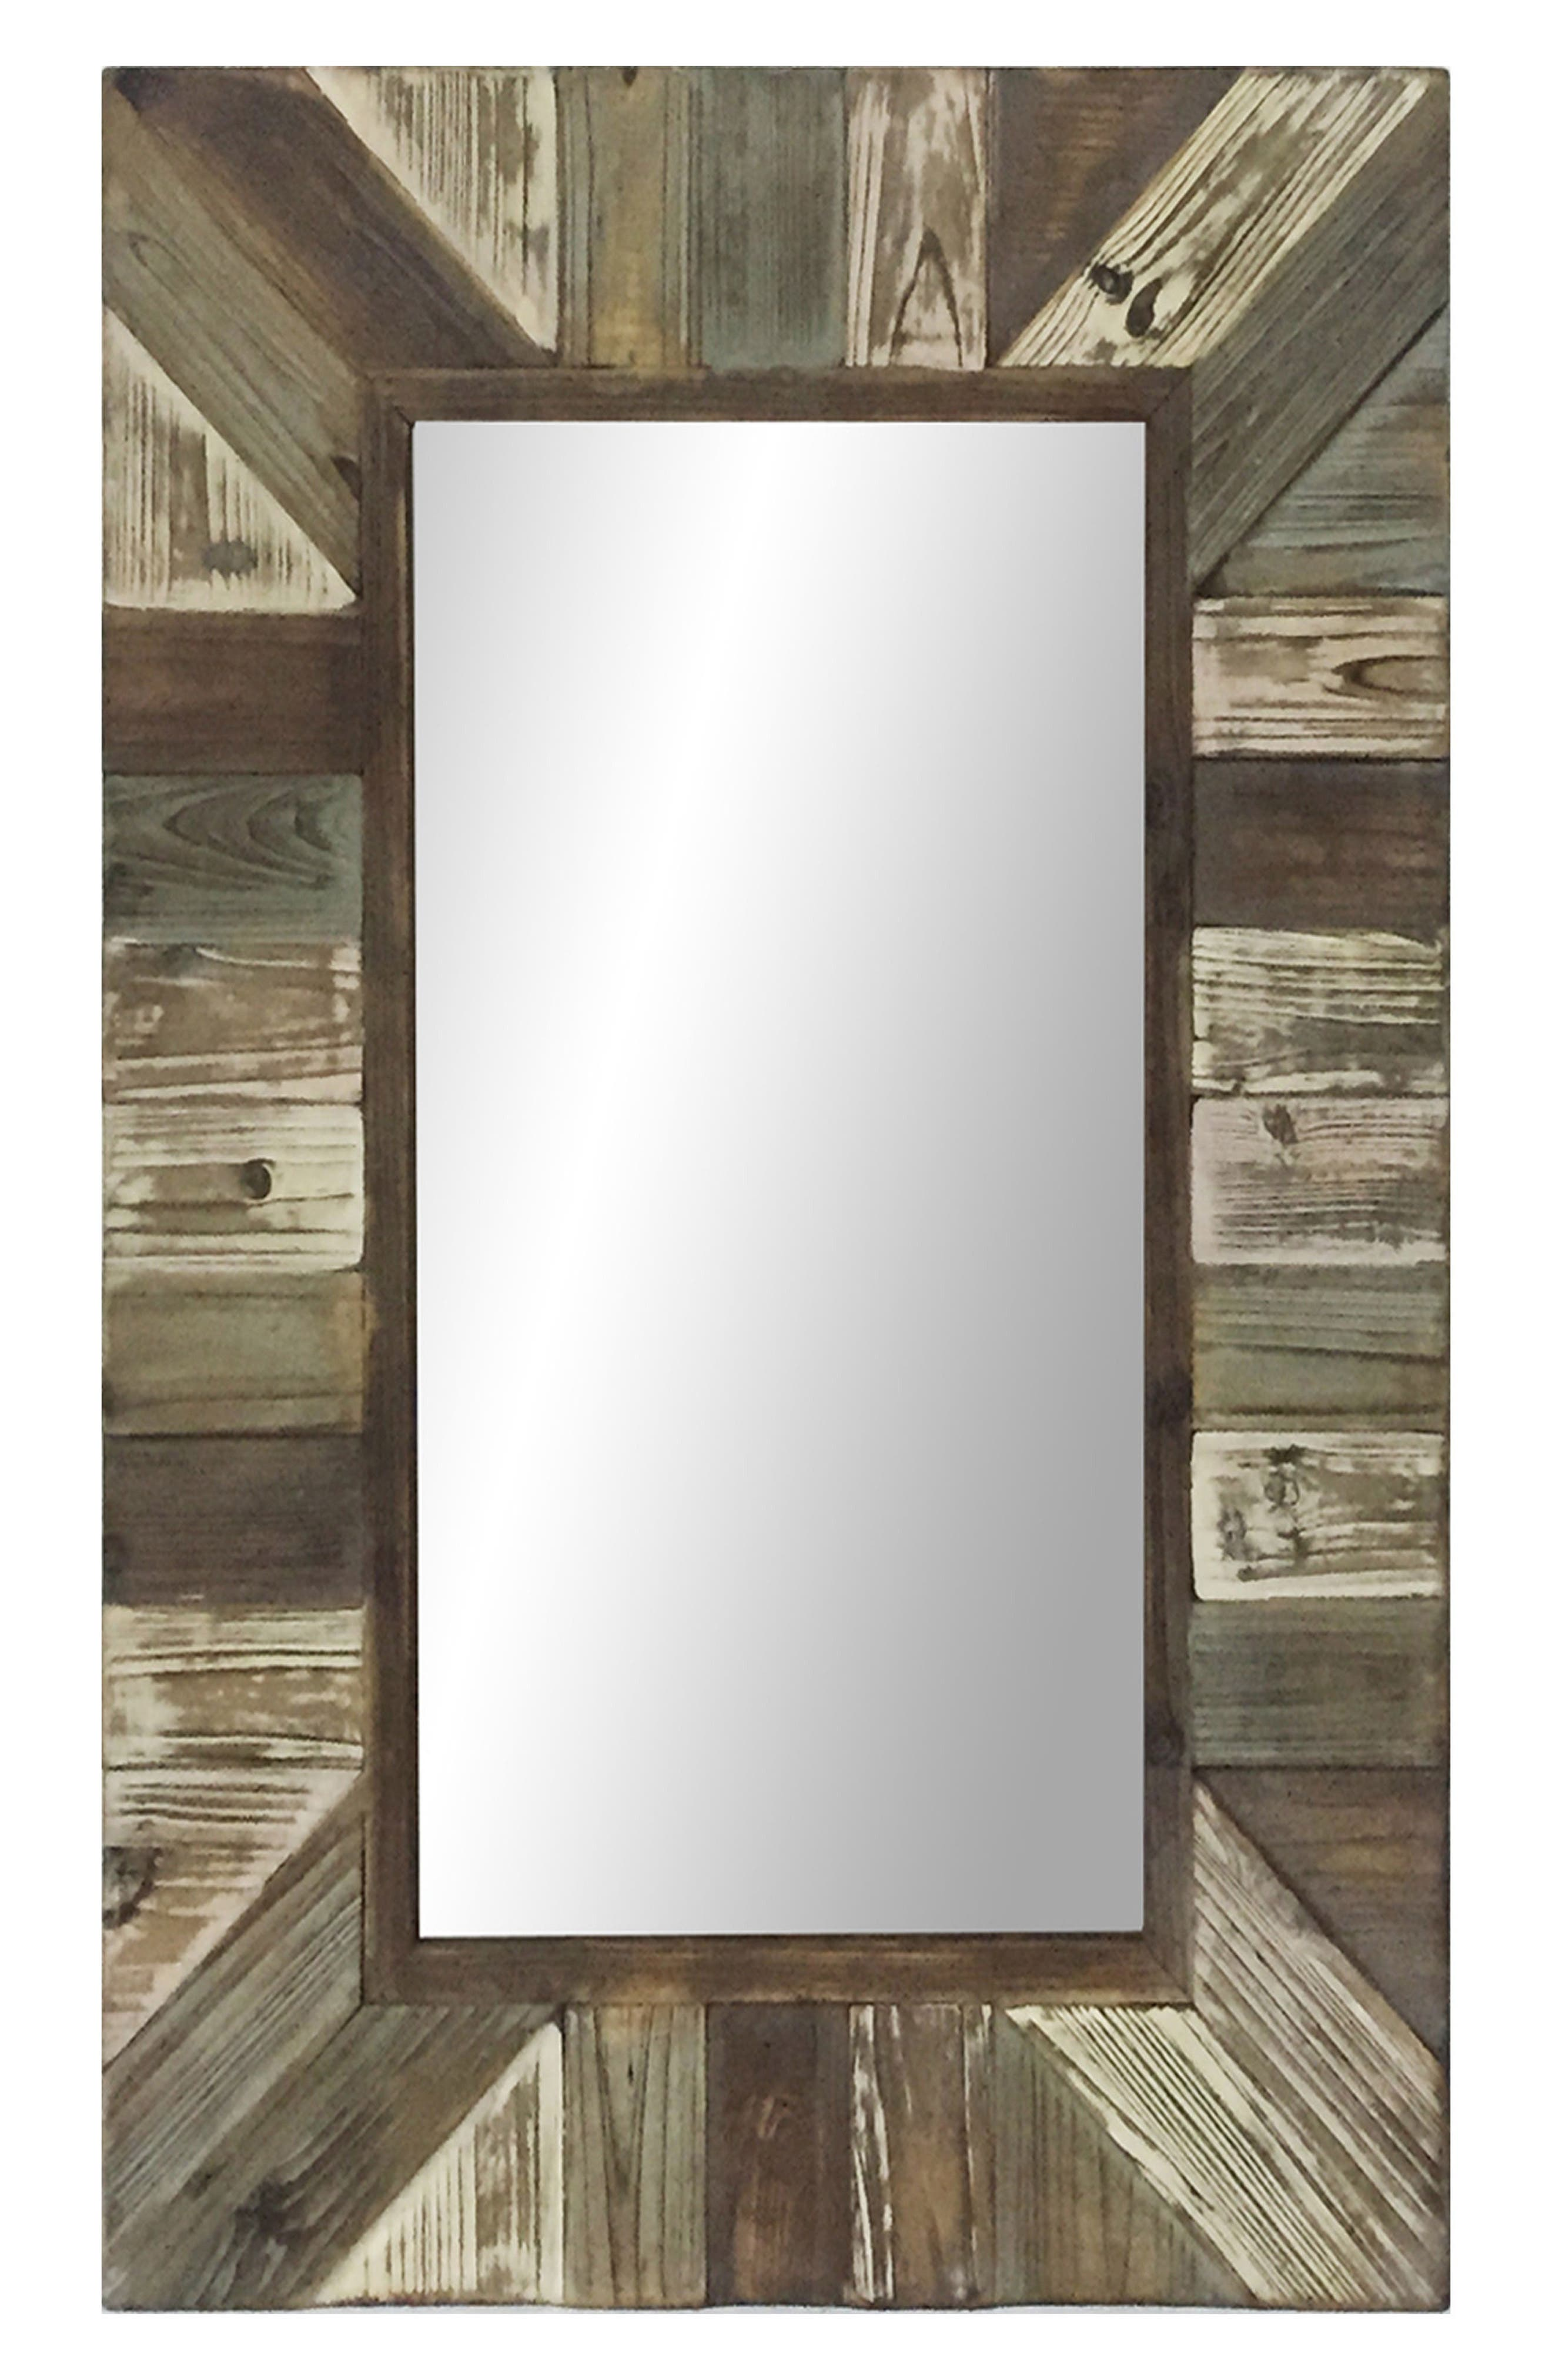 Alternate Image 1 Selected - Crystal Art Gallery Multicolor Wood Wall Mirror